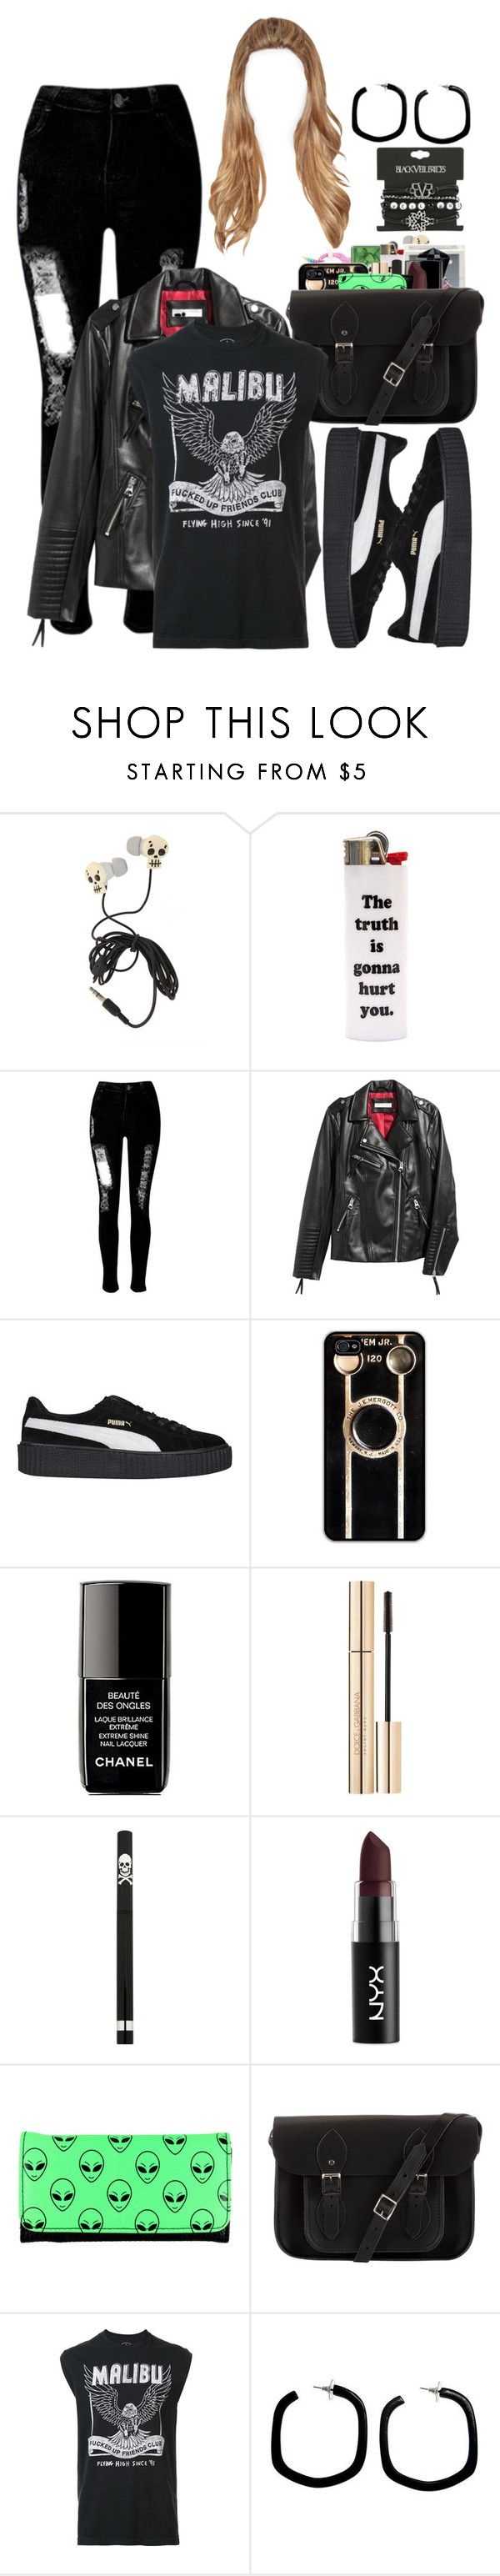 """""""Untitled #567"""" by eduardafrancisca69 ❤ liked on Polyvore featuring WithChic, Forum, Puma, Retrò, Chanel, Dolce&Gabbana, NYX, The Cambridge Satchel Company, Local Authority and NOVICA"""